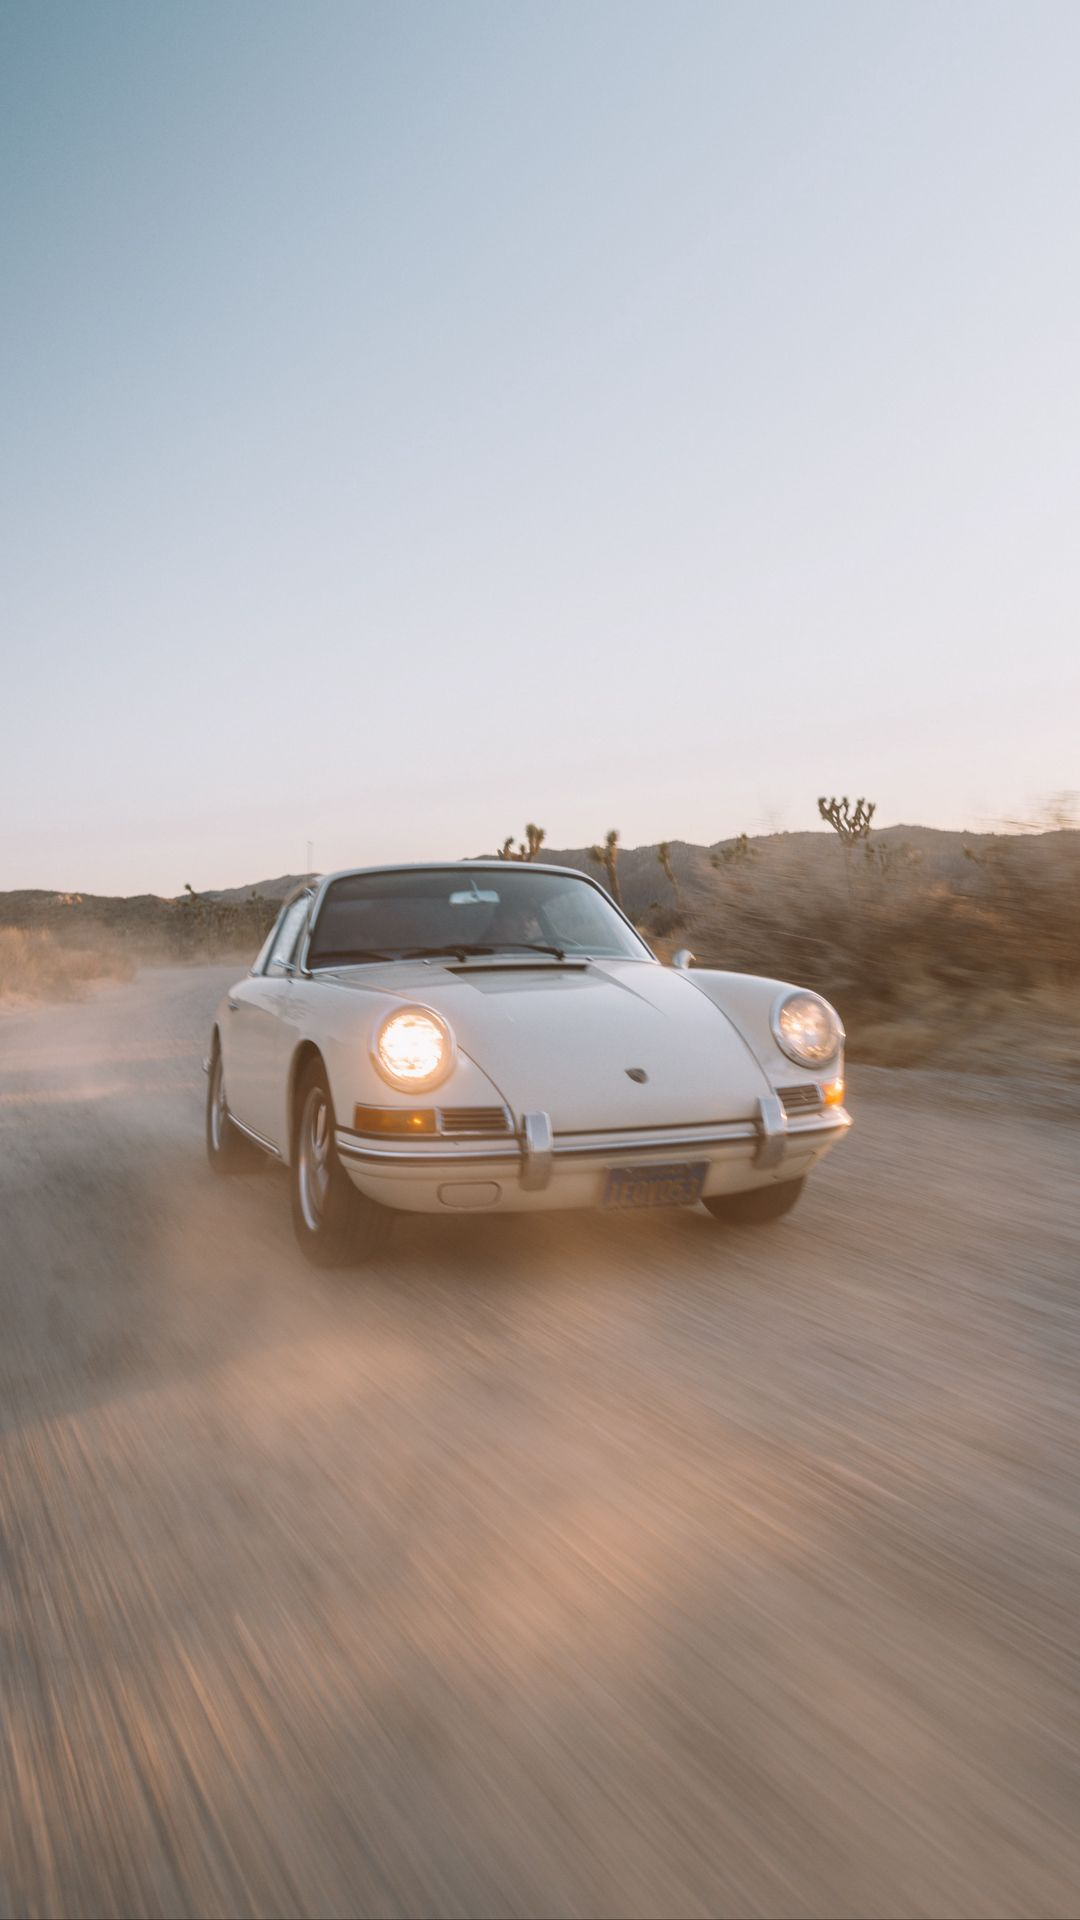 New Porsche 911 Series Car Wallpapers Free Download for Phone & iPhone